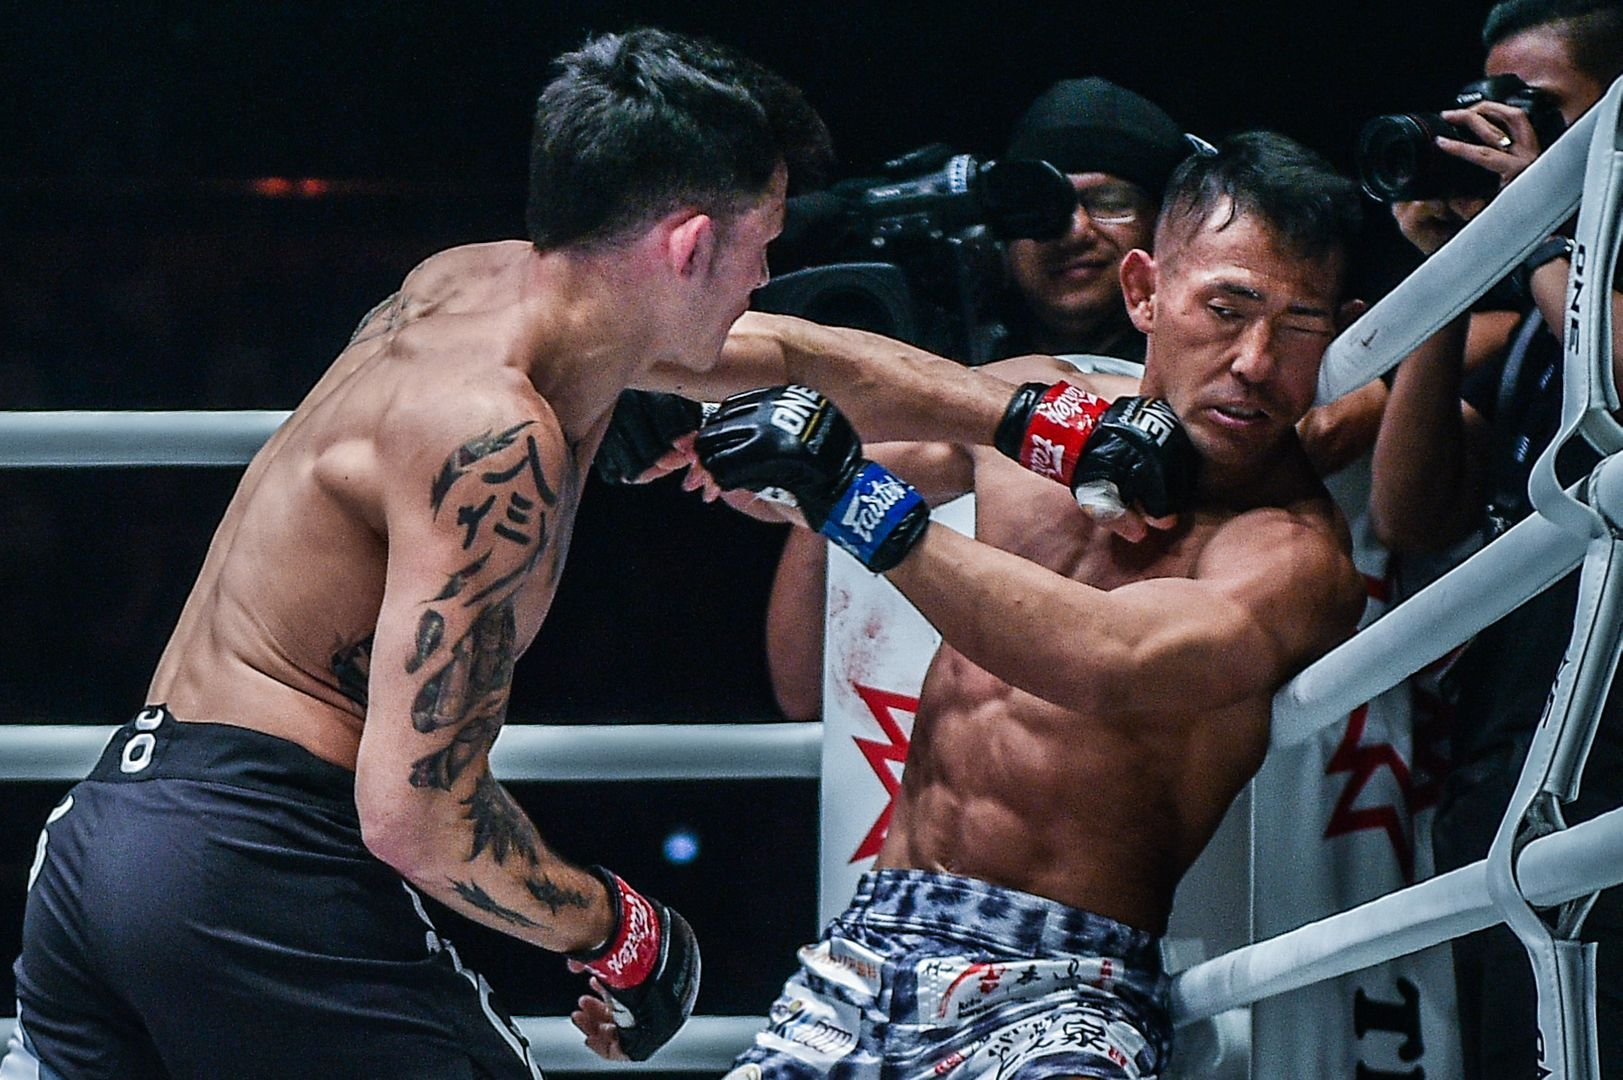 Thanh Le knocks out Ryogo Takahashi at ONE A NEW TOMORROW